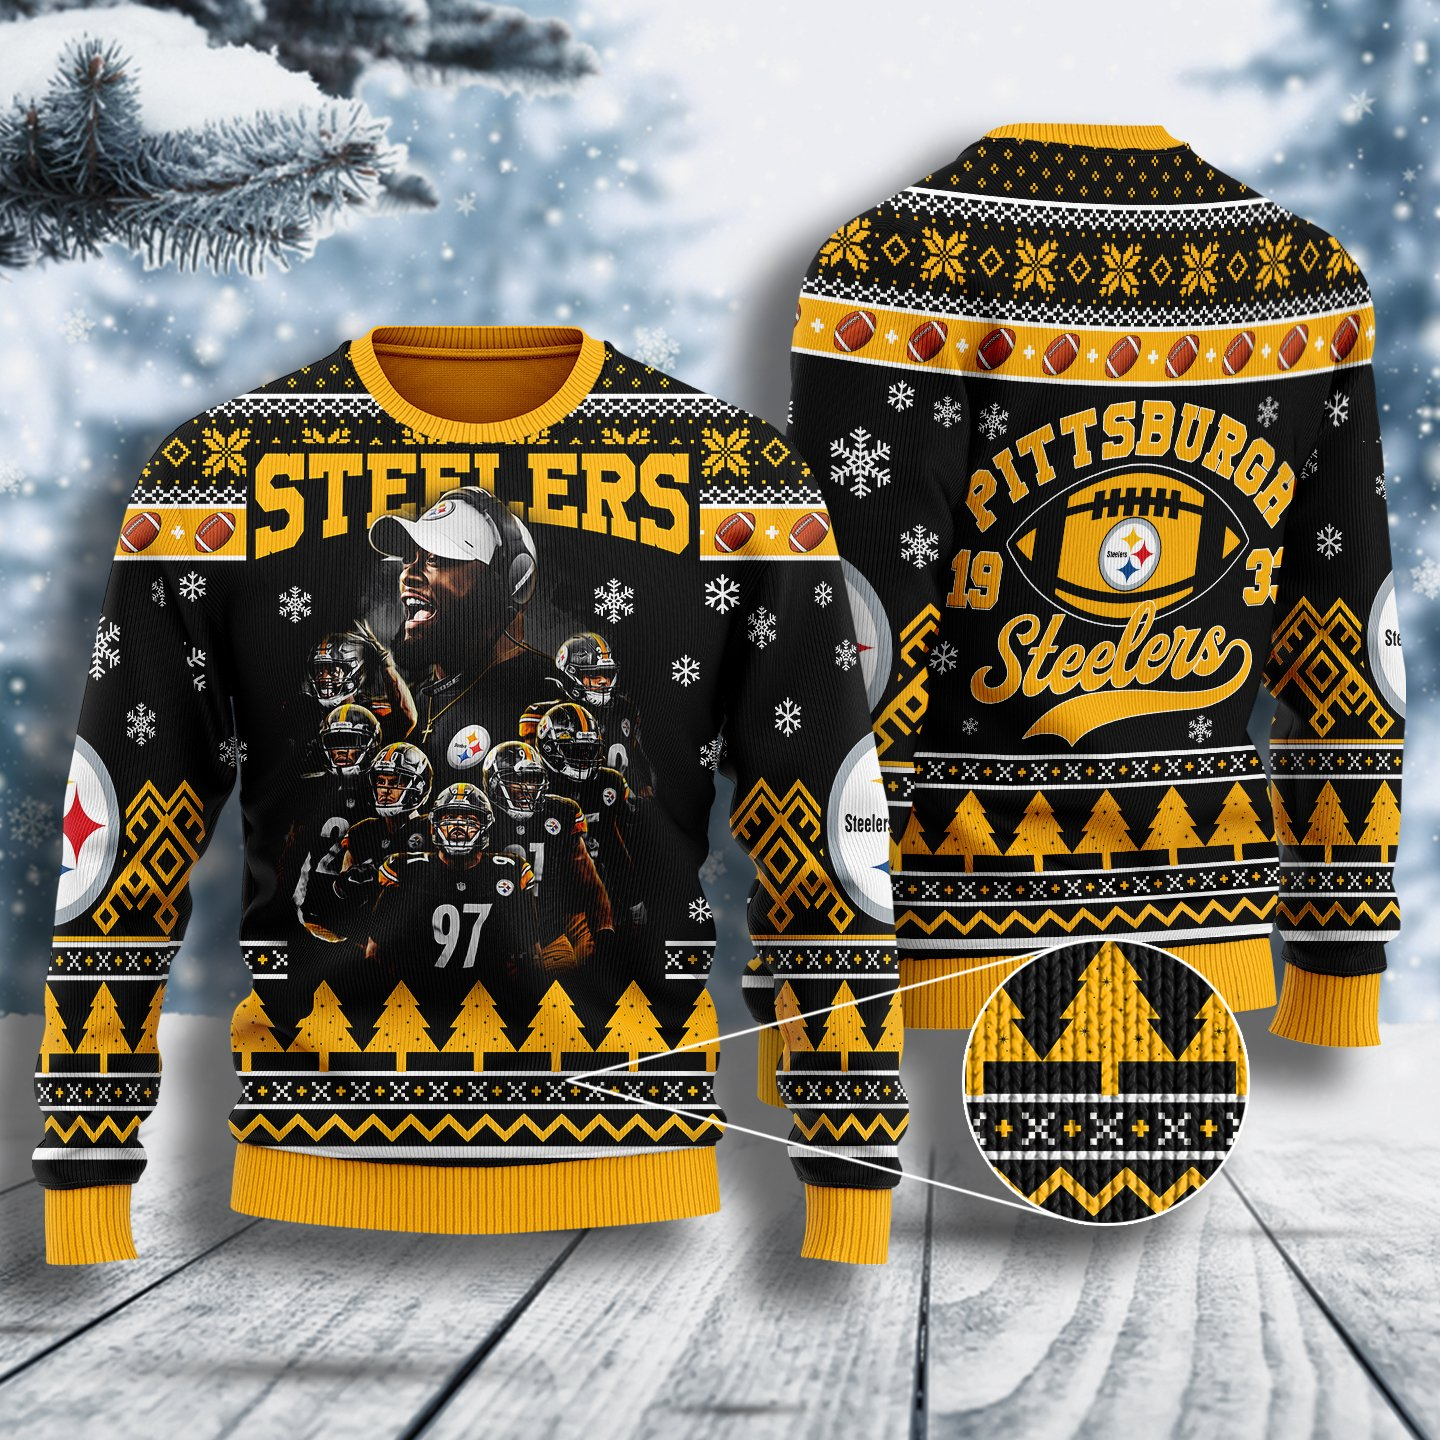 the pittsburgh steelers all over printed ugly christmas sweater 5